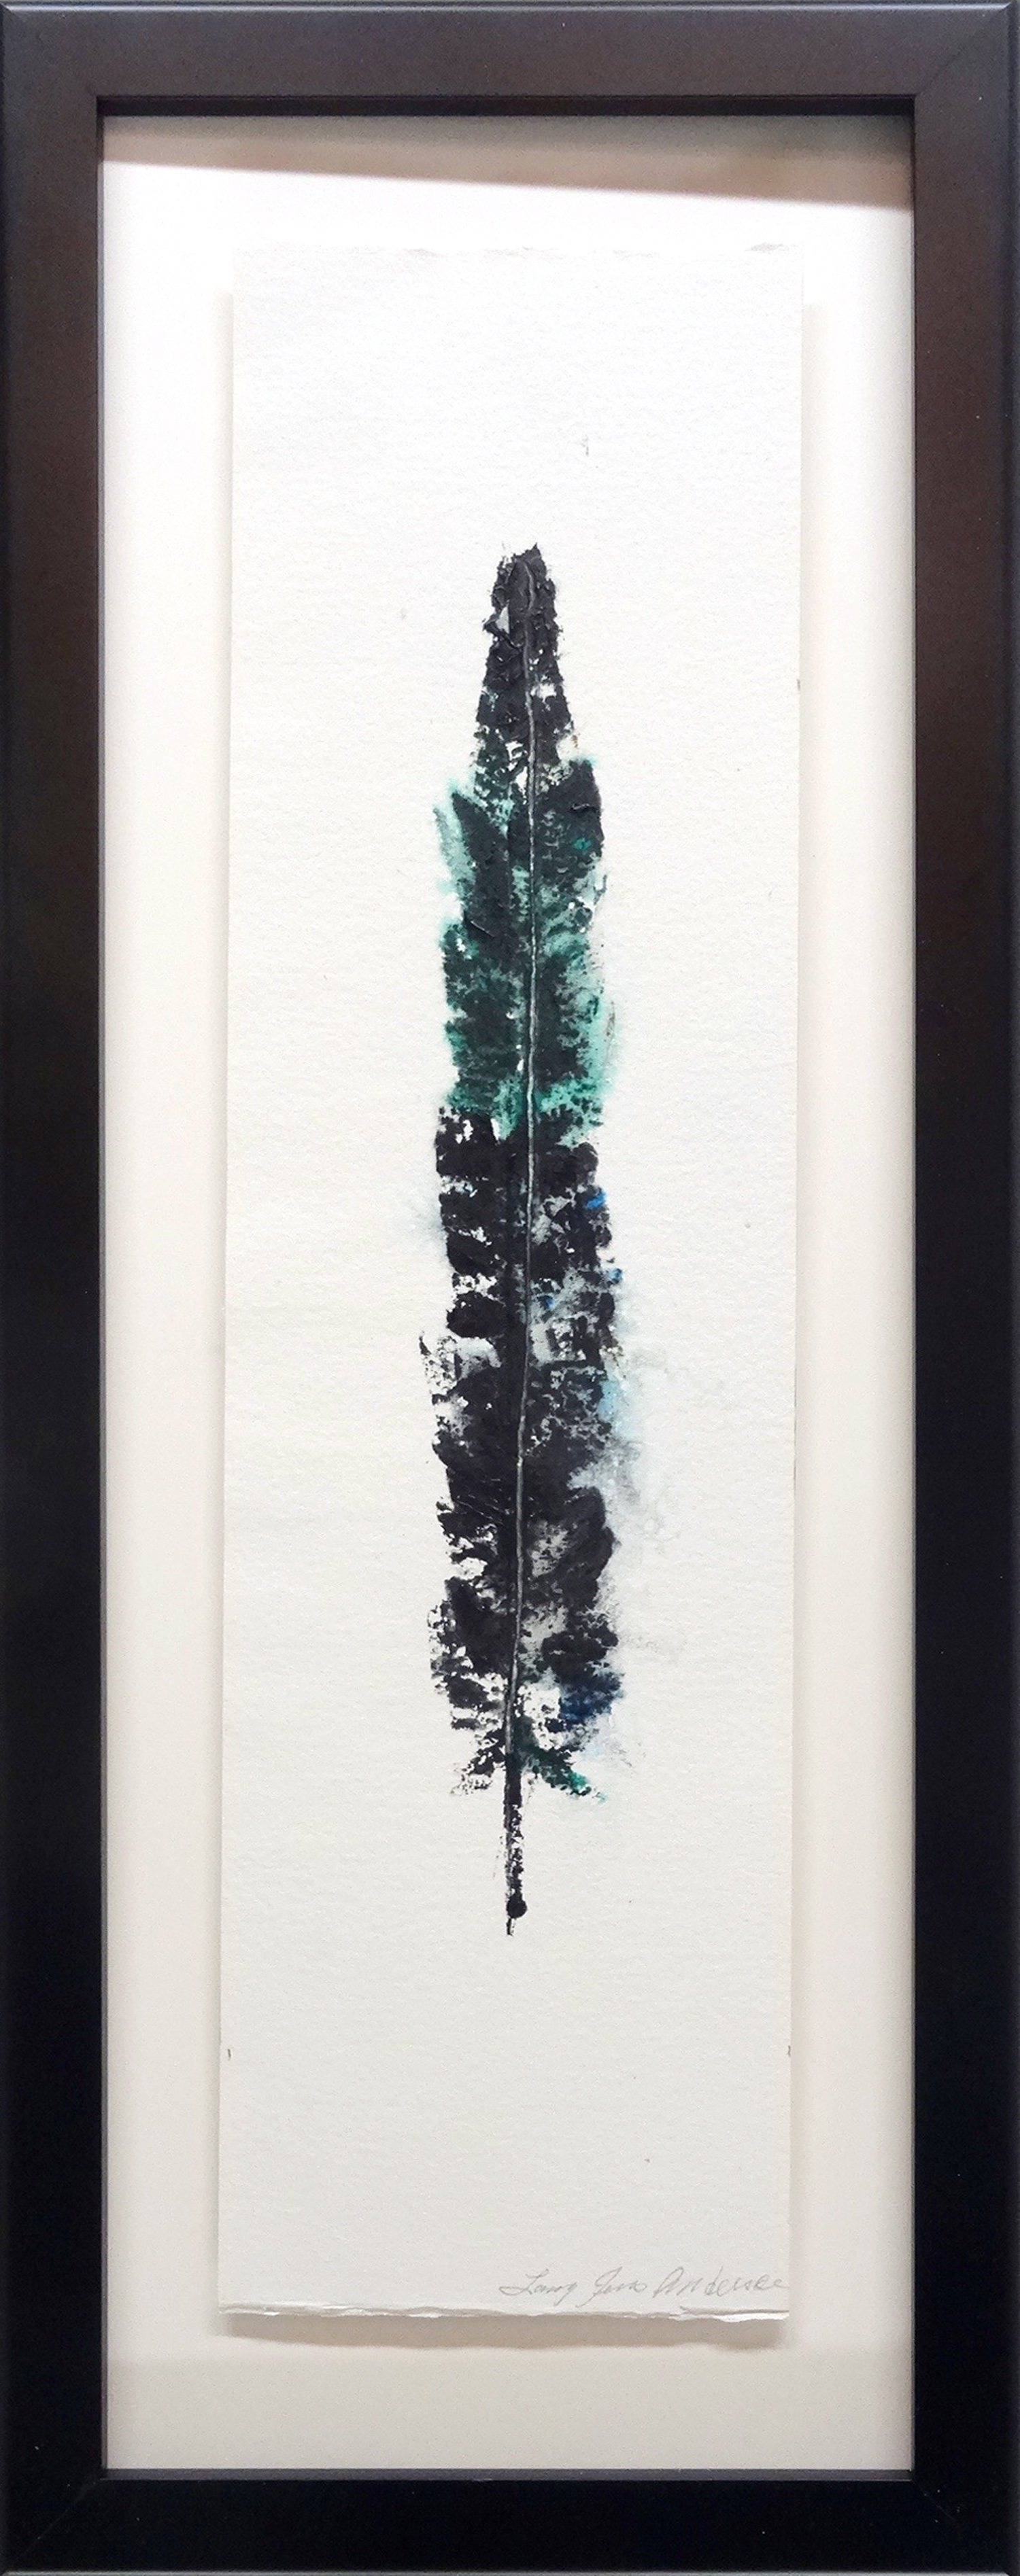 LARRY JENS ANDERSON SOLO FEATHER 3 ACRYLIC ON LAYERED WATERCOLOR PAPER IN SHADOWBOX FRAME 27 X 10 INCHES LJA 198G.jpg